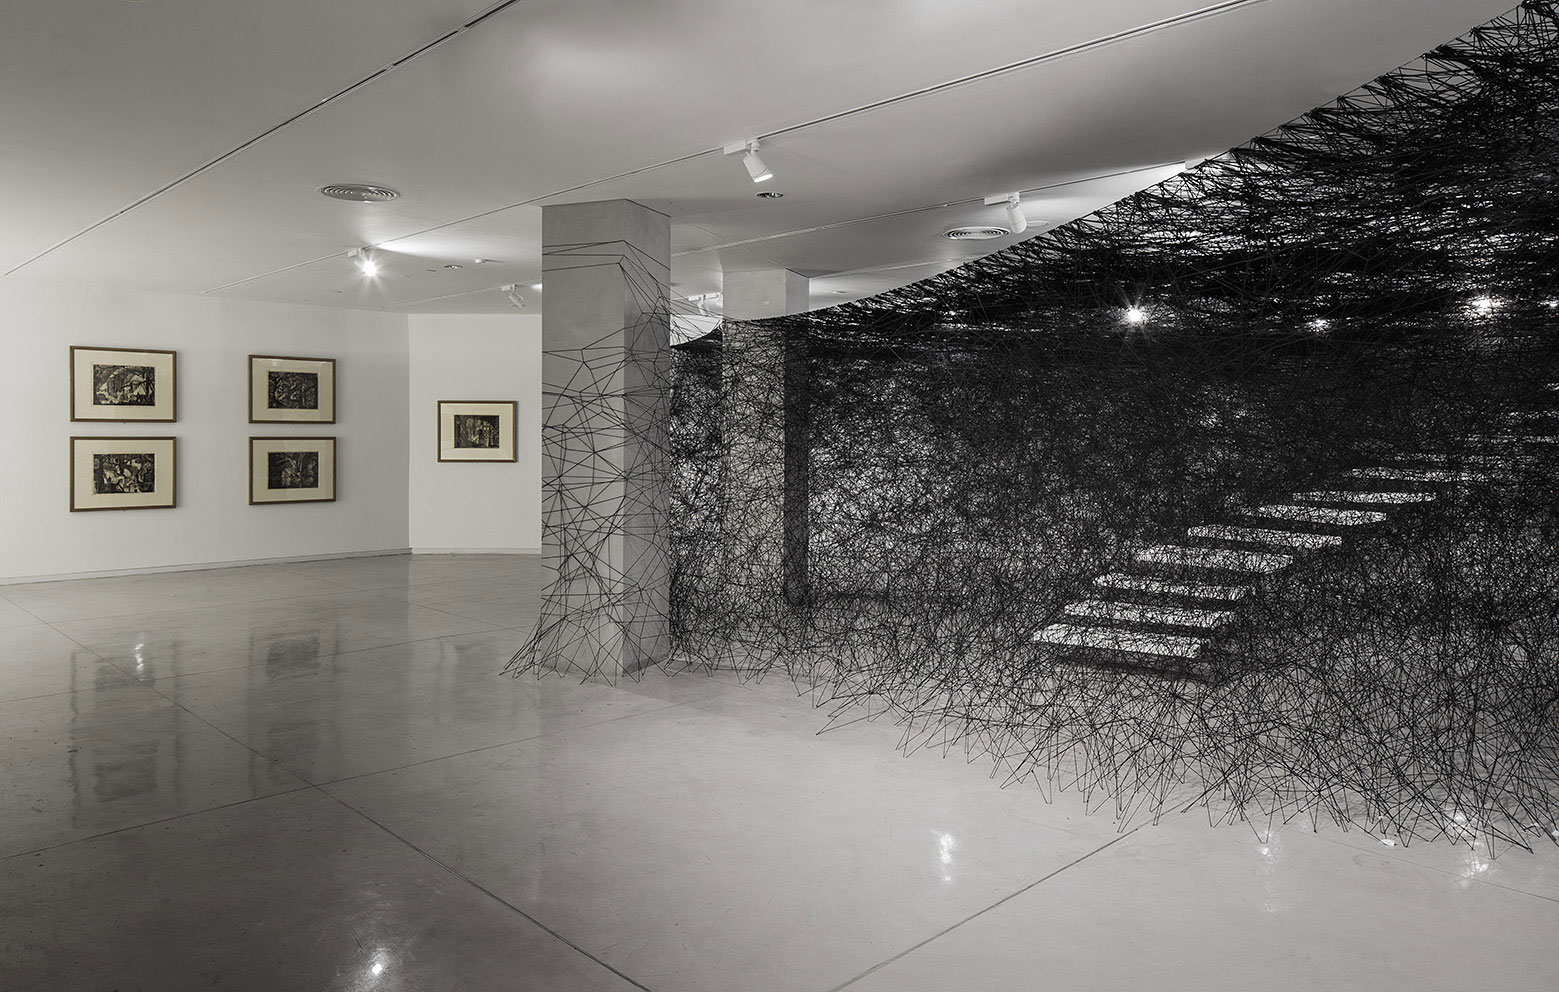 Installation-Photograph-5,-Piranesi-Shiota--Prisons-of-the-Imagination-at-the-Tel-Aviv-Museum-of-Art